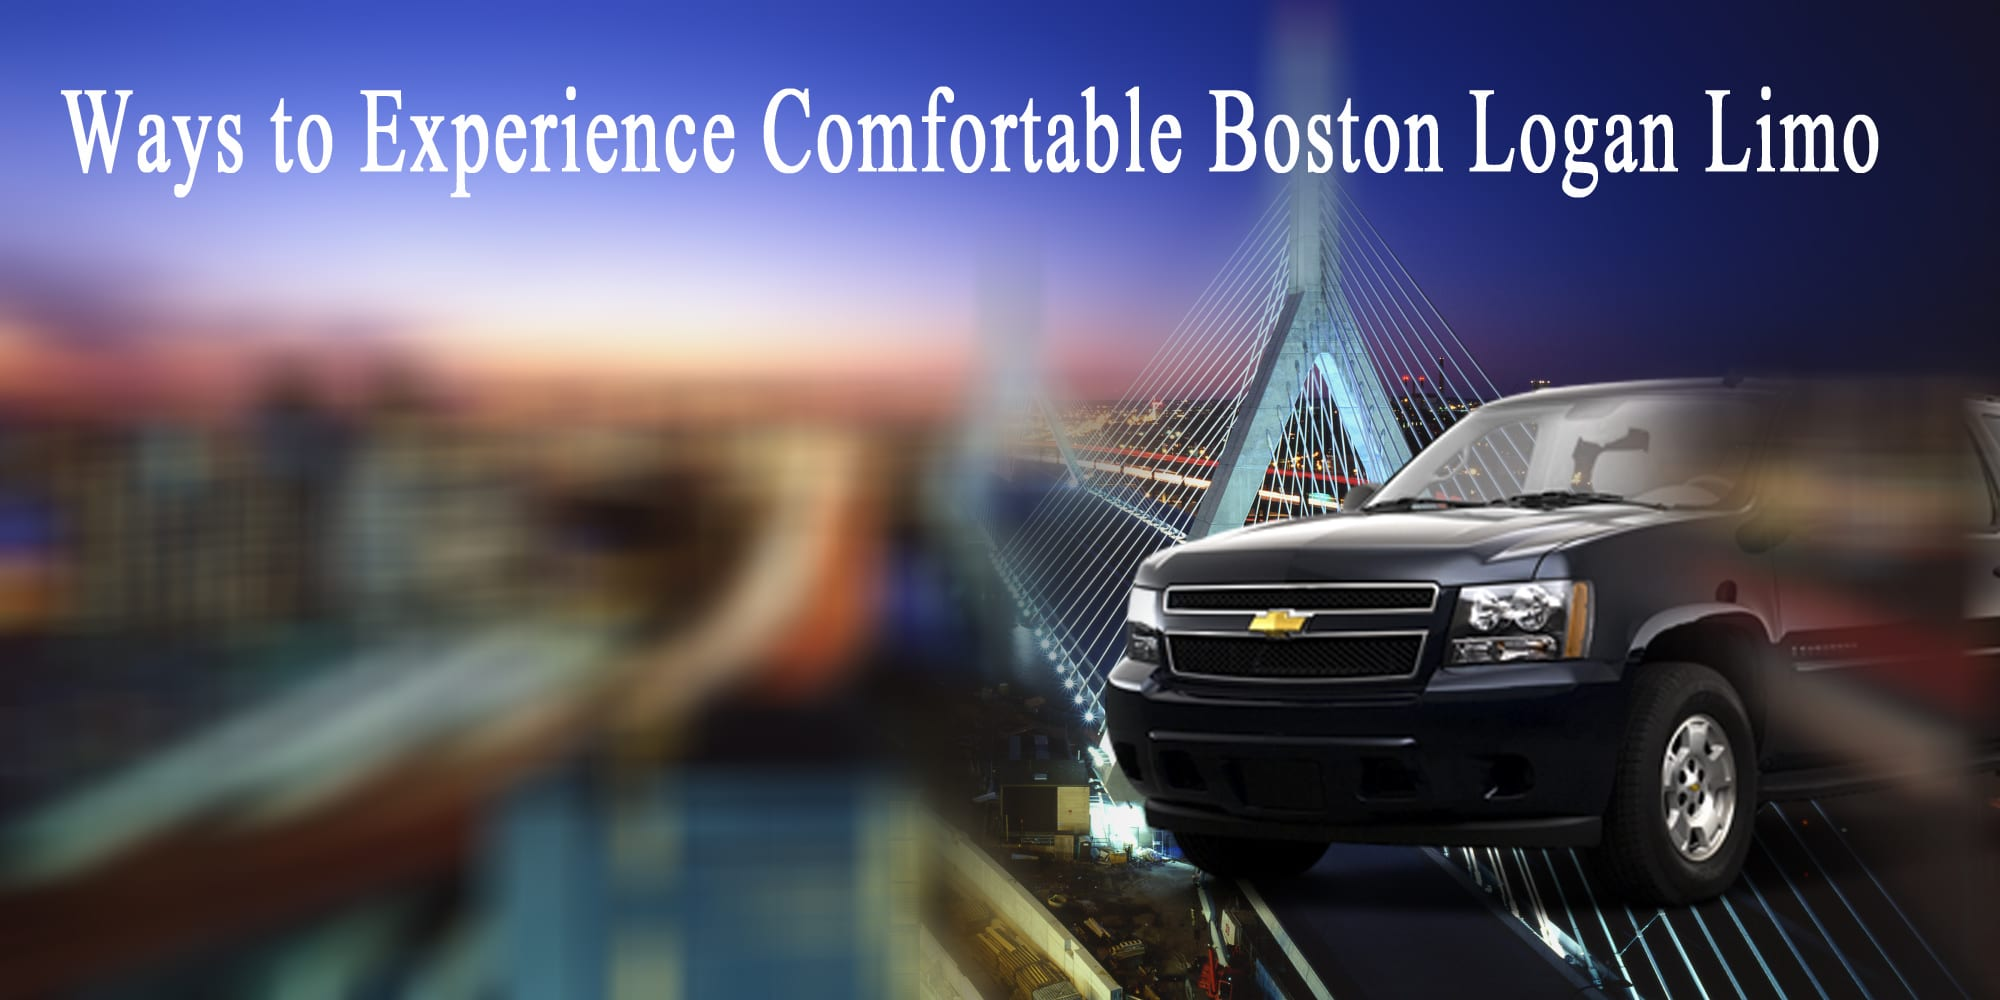 Boston Logan Limo